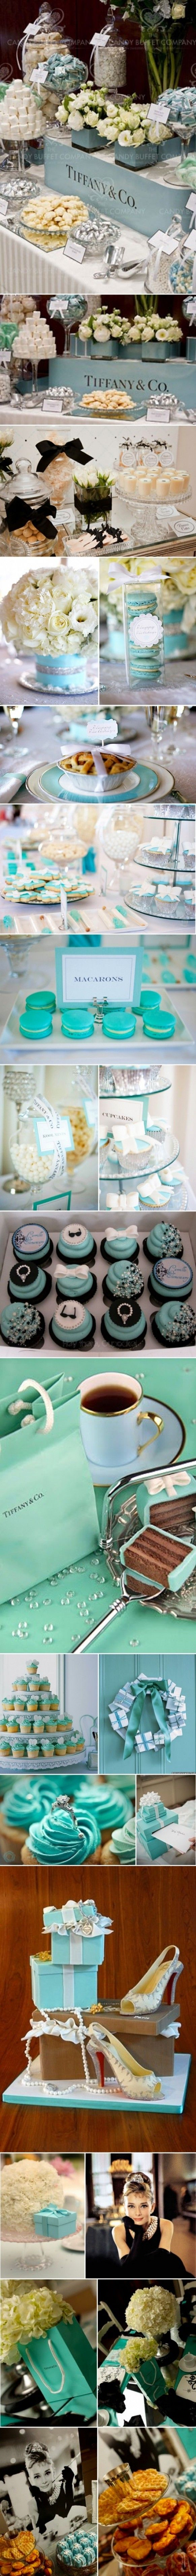 Tiffany wedding ideas